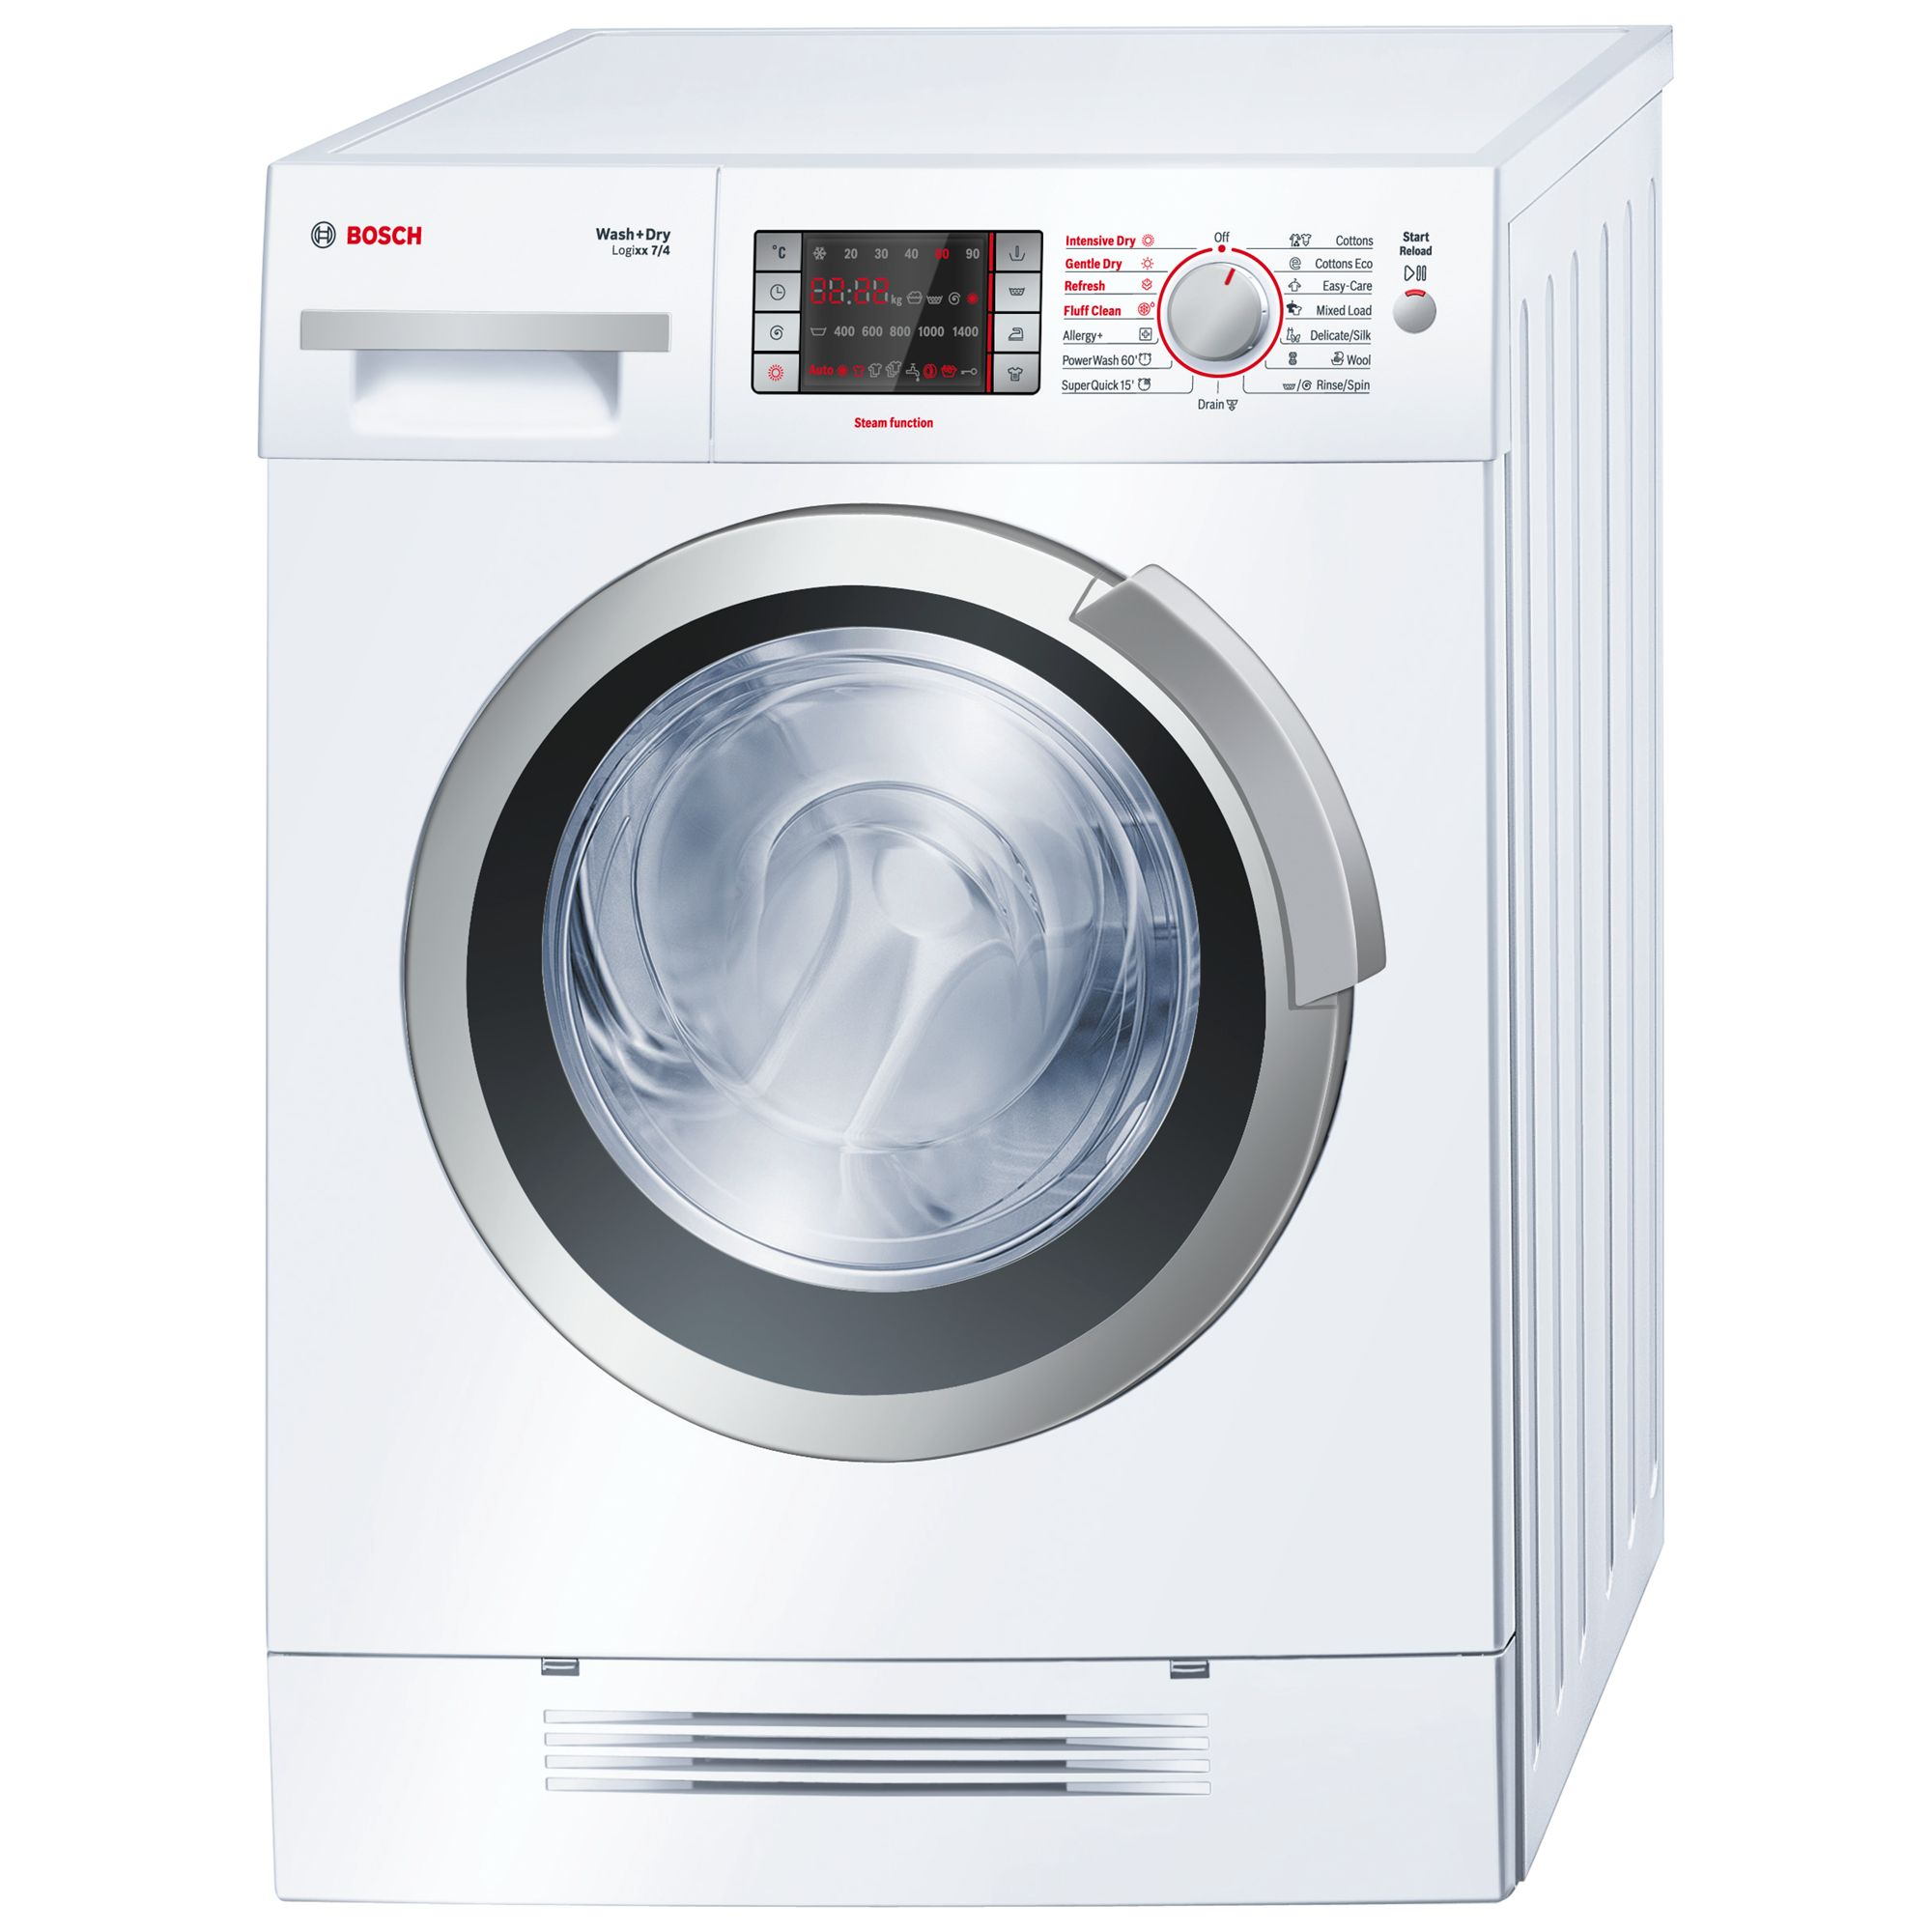 Bosch Logixx WVH28421GB Washer Dryer, 7kg Wash/4kg Dry Load, B Energy Rating, 1400rpm Spin, White